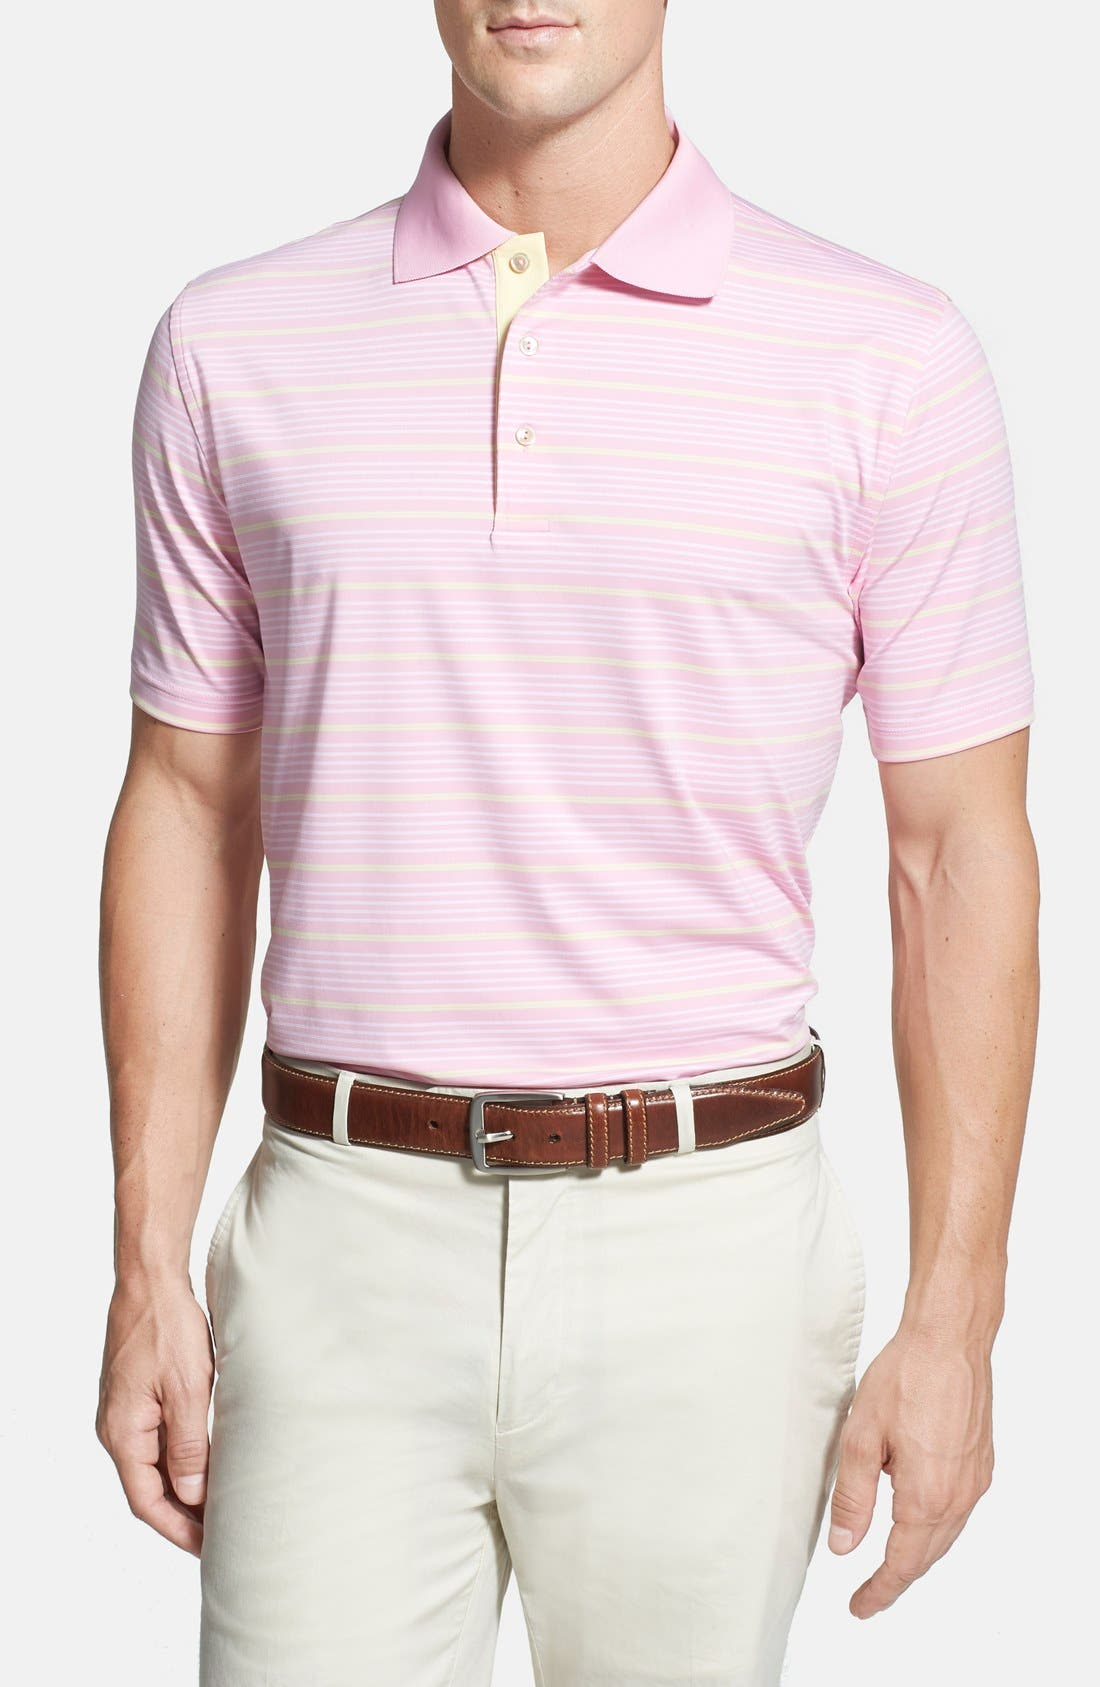 Alternate Image 1 Selected - Peter Millar 'Staley' Moisture Wicking Polo